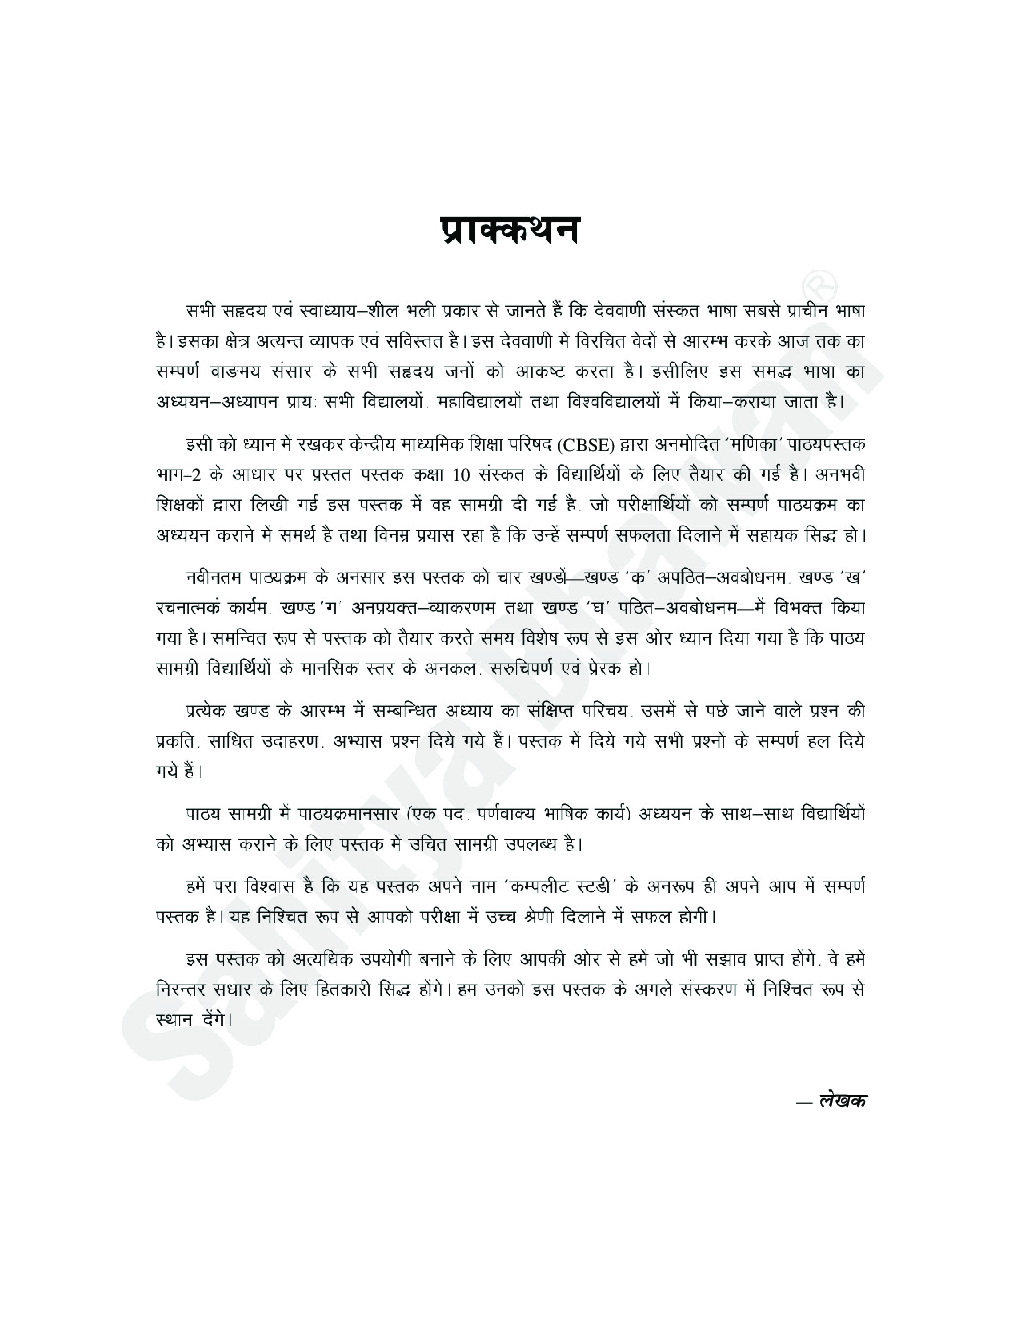 CBSE Complete Study Sanskrit For Class - X - Page 4